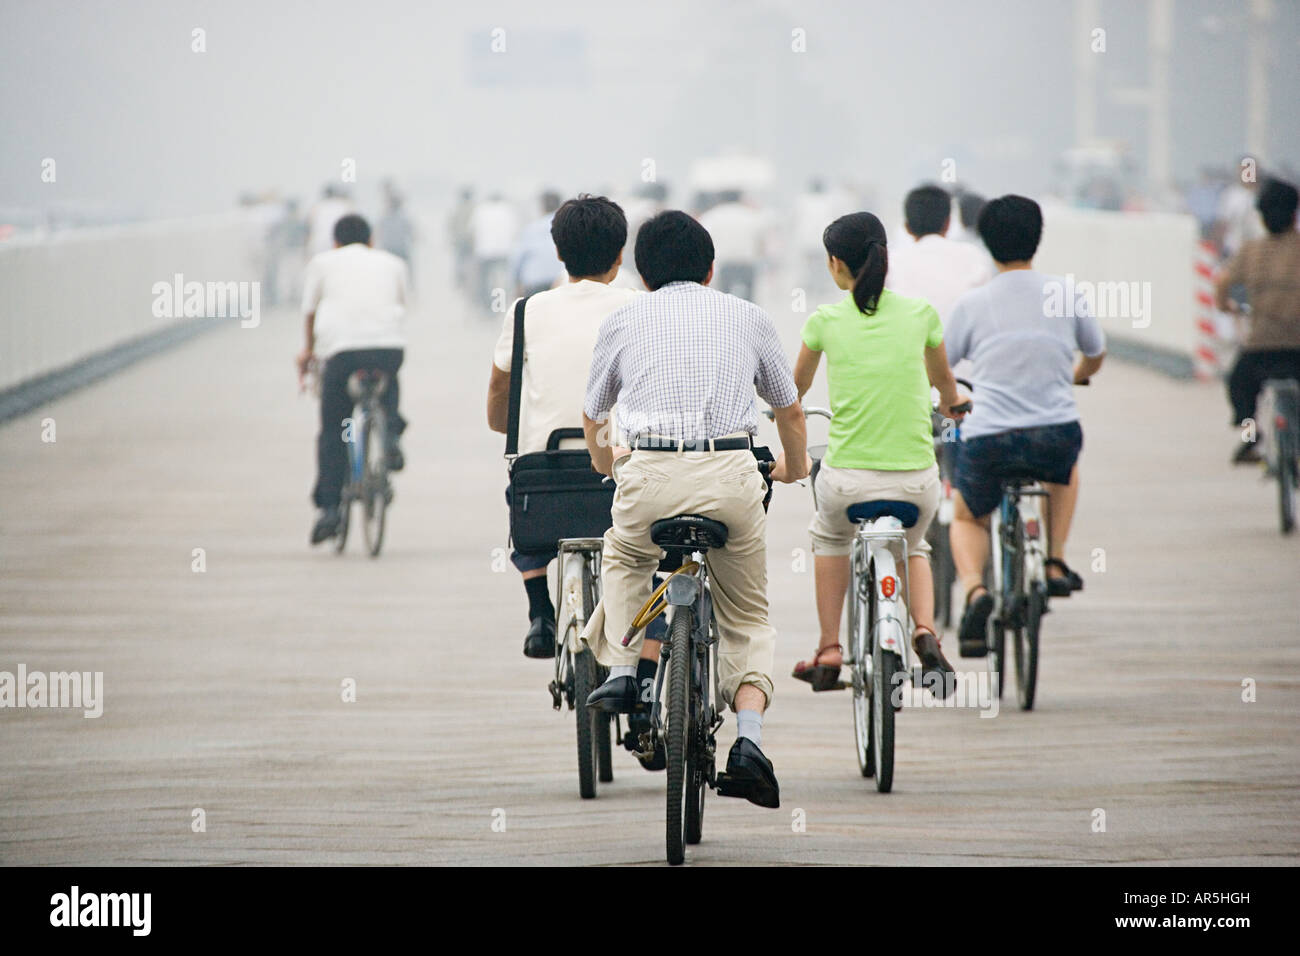 Chinese people cycling - Stock Image